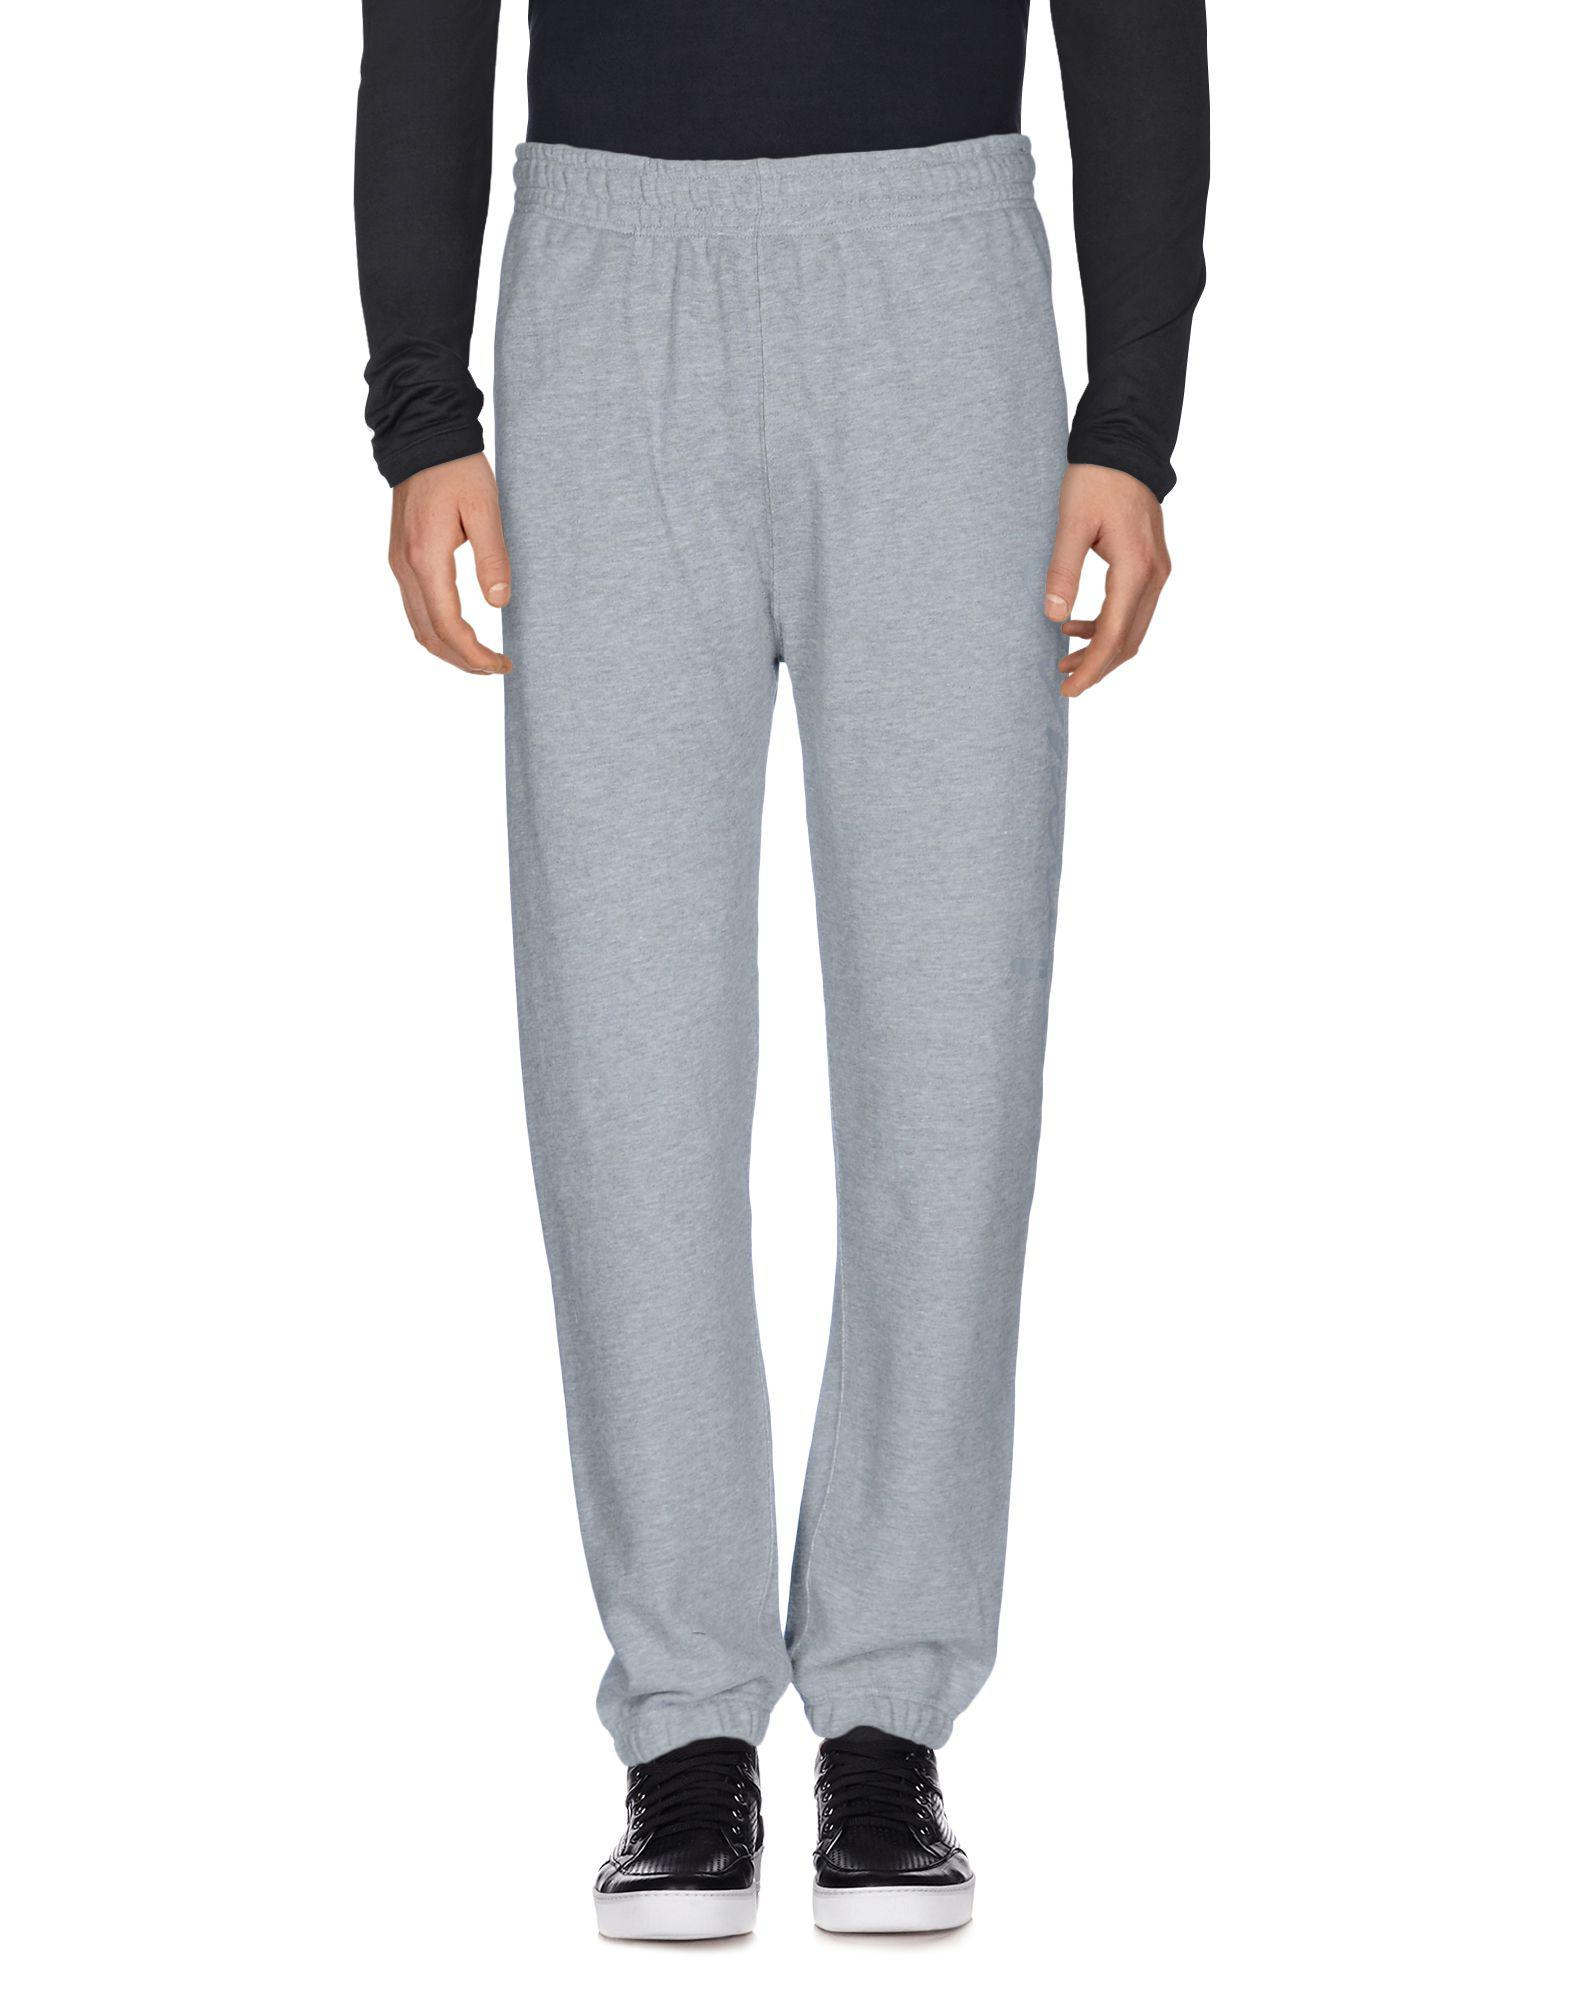 TROUSERS - Casual trousers Undefeated Newest For Sale Pictures Cheap Price Sale Footlocker Finishline R2SVVwATX